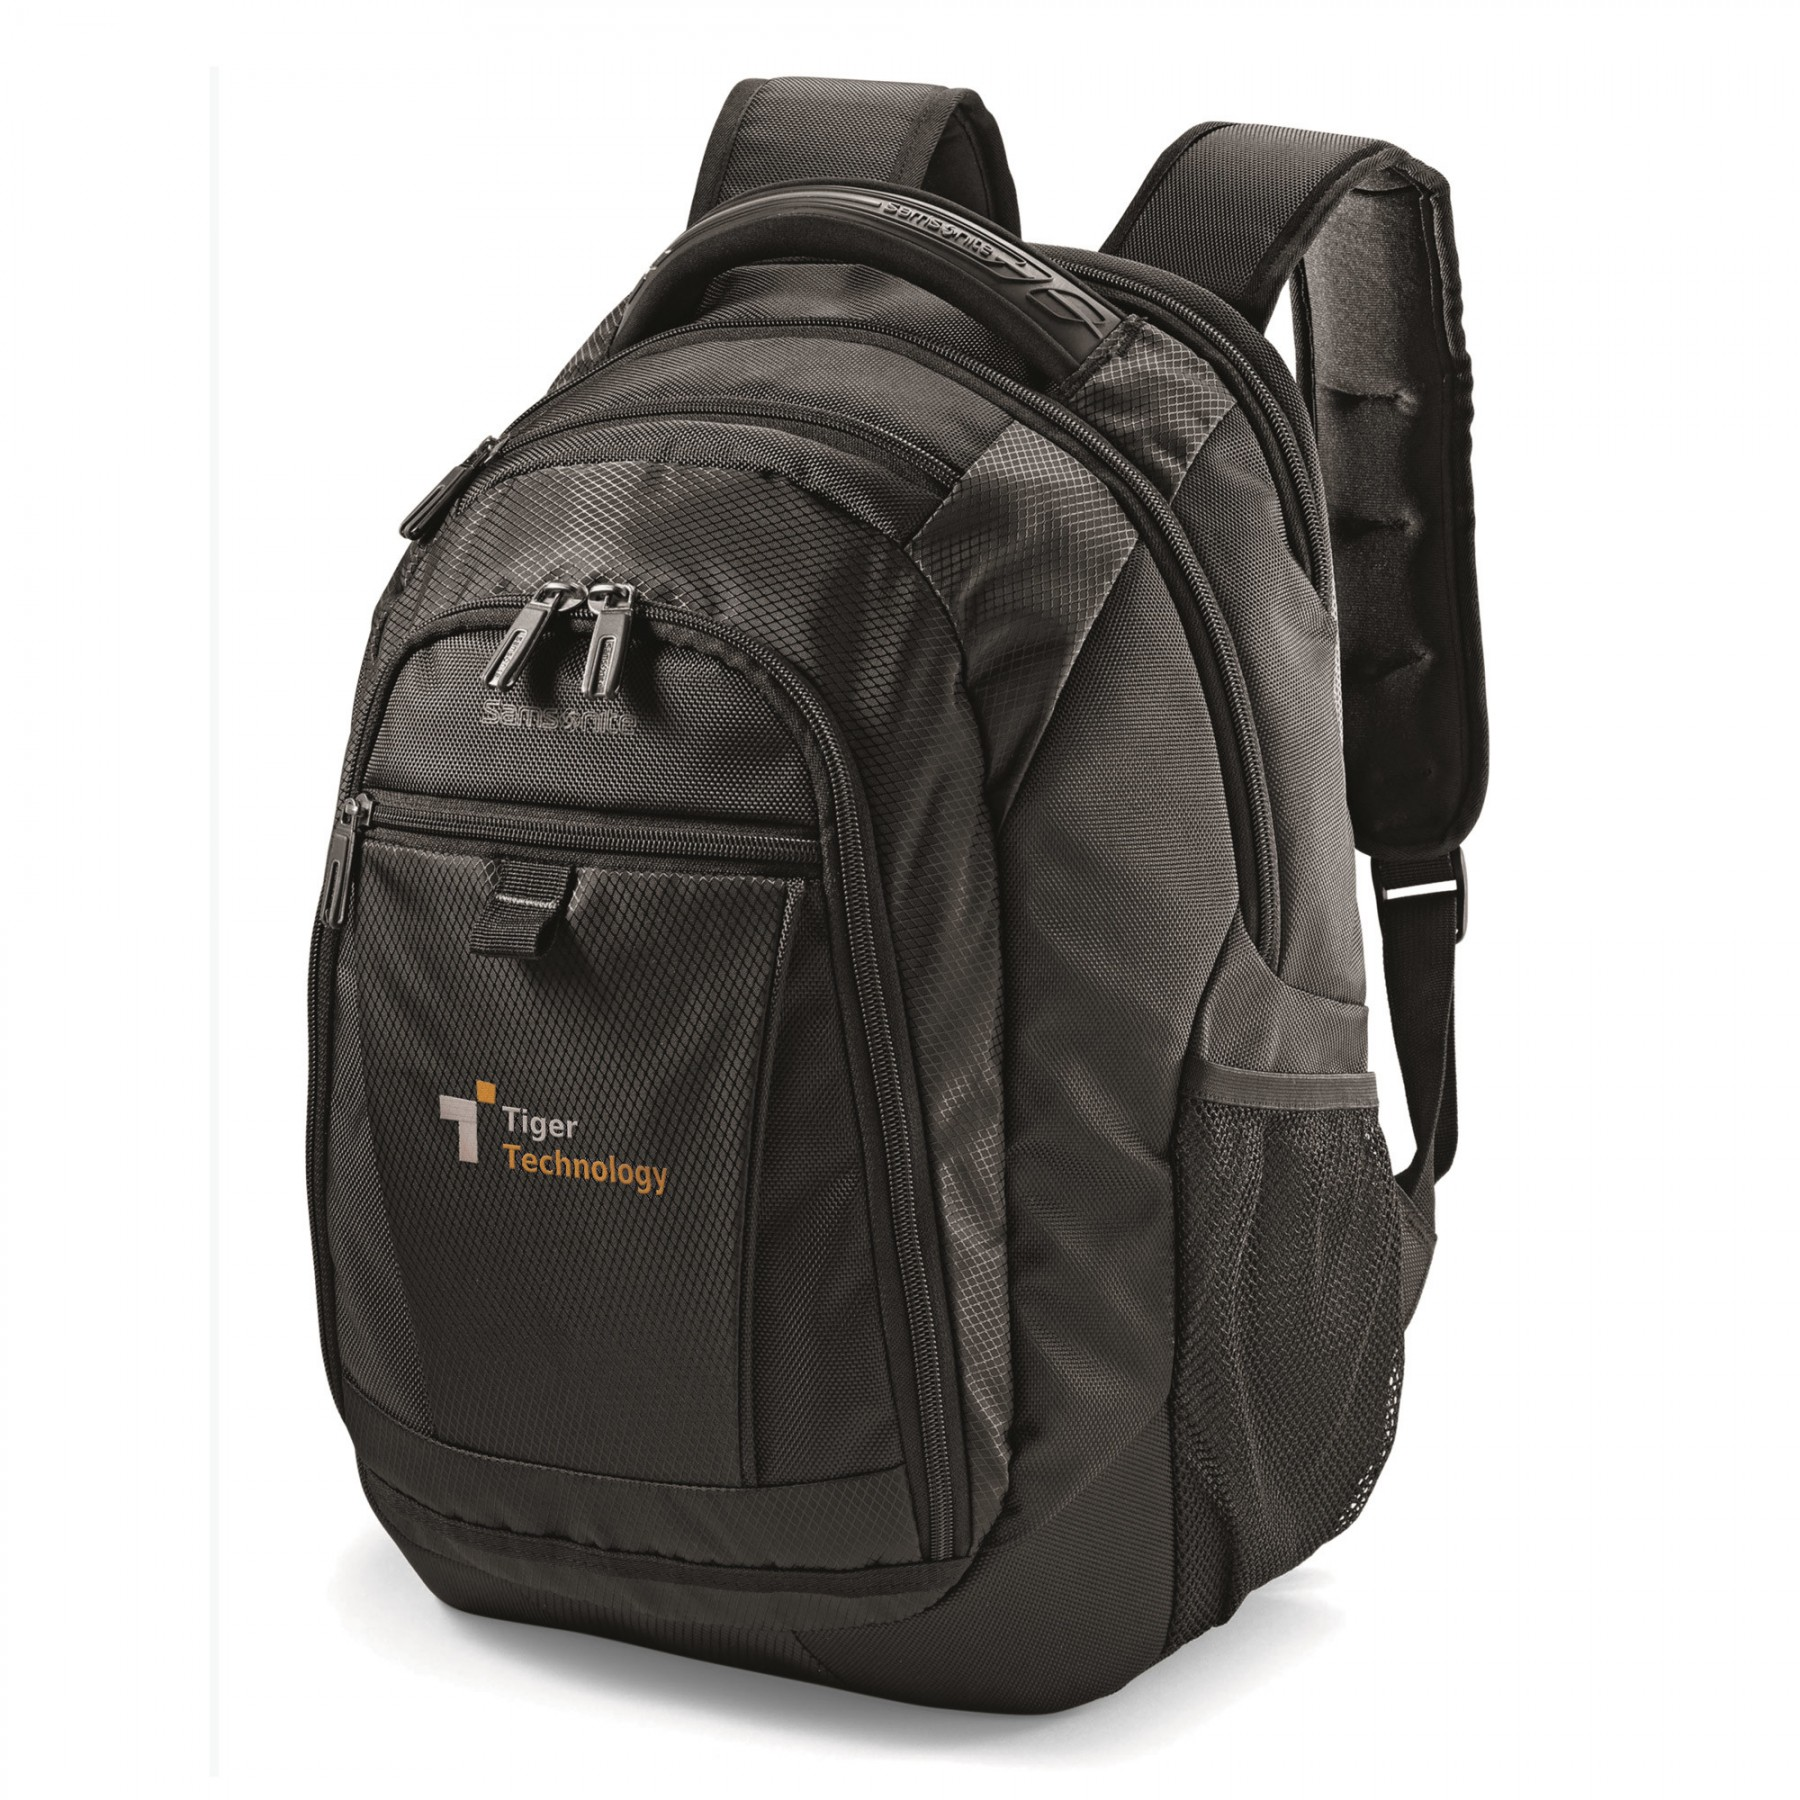 Samsonite Tectonic 2 Medium Computer Backpack